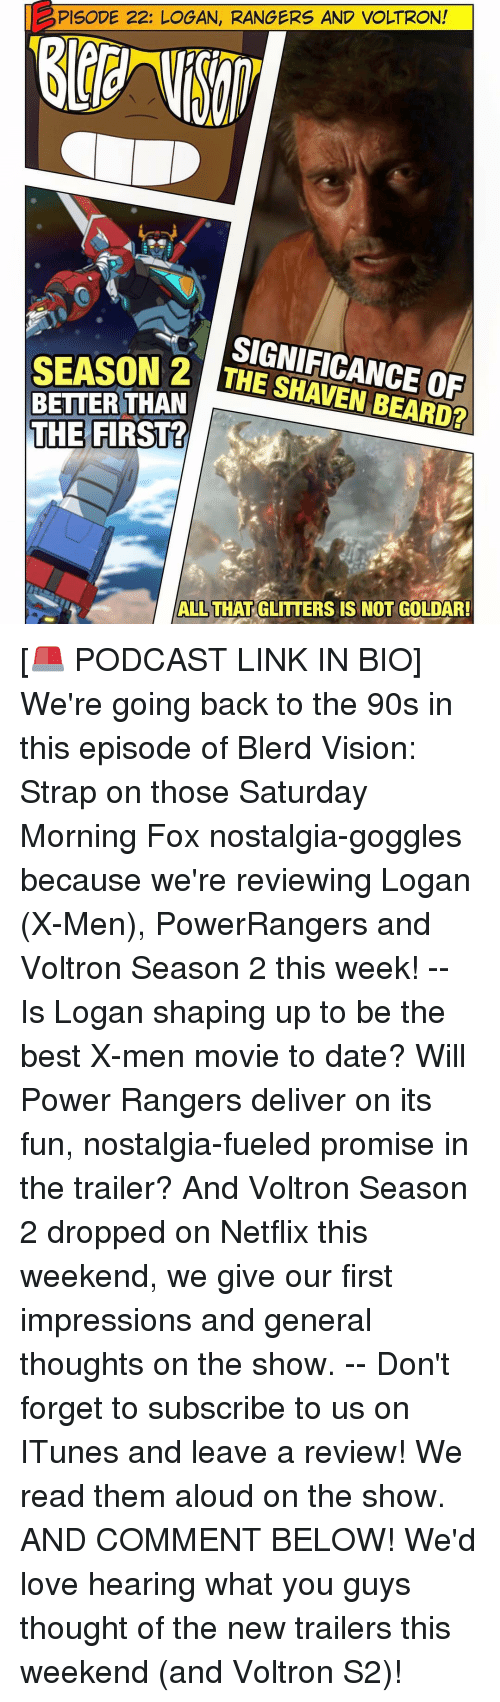 Memes, Nostalgia, and Power Rangers: T PISODE 22: LOGAN, RANGERS AND VOLTRON!  SEASON SIGNIFICANCE OF  2 BETTER THAN  THE FIRST  ALL THAT GLITTERSIS NOT GOLDARI [🚨 PODCAST LINK IN BIO] We're going back to the 90s in this episode of Blerd Vision: Strap on those Saturday Morning Fox nostalgia-goggles because we're reviewing Logan (X-Men), PowerRangers and Voltron Season 2 this week! -- Is Logan shaping up to be the best X-men movie to date? Will Power Rangers deliver on its fun, nostalgia-fueled promise in the trailer? And Voltron Season 2 dropped on Netflix this weekend, we give our first impressions and general thoughts on the show. -- Don't forget to subscribe to us on ITunes and leave a review! We read them aloud on the show. AND COMMENT BELOW! We'd love hearing what you guys thought of the new trailers this weekend (and Voltron S2)!